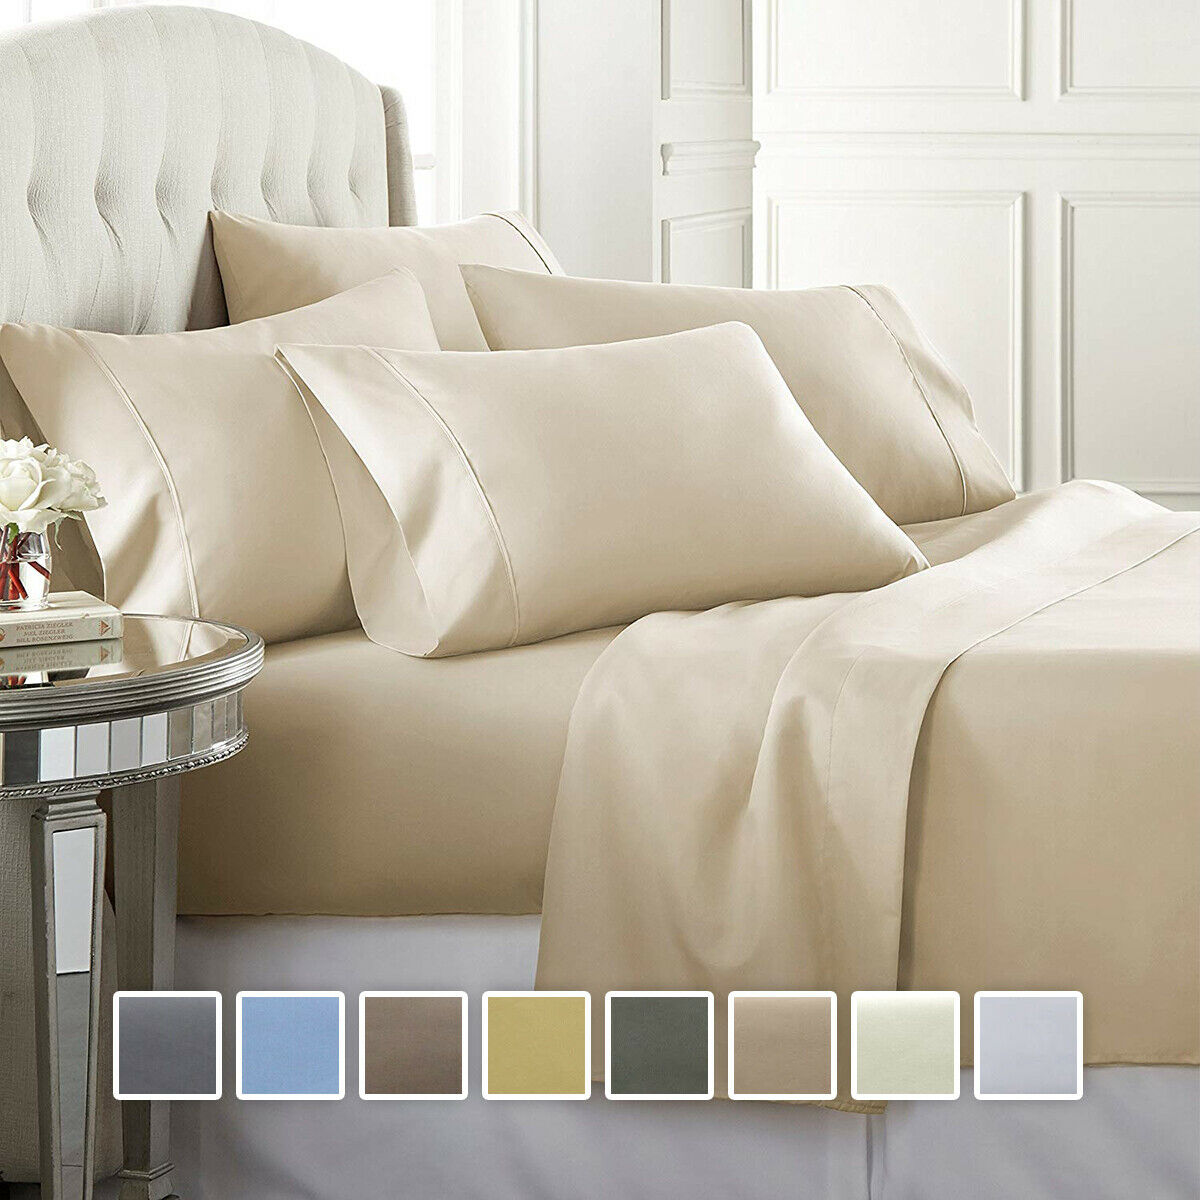 Wrinkle Free 650 Thread Count Cotton Blend Sheet Set Solid Sateen Bed Sheets